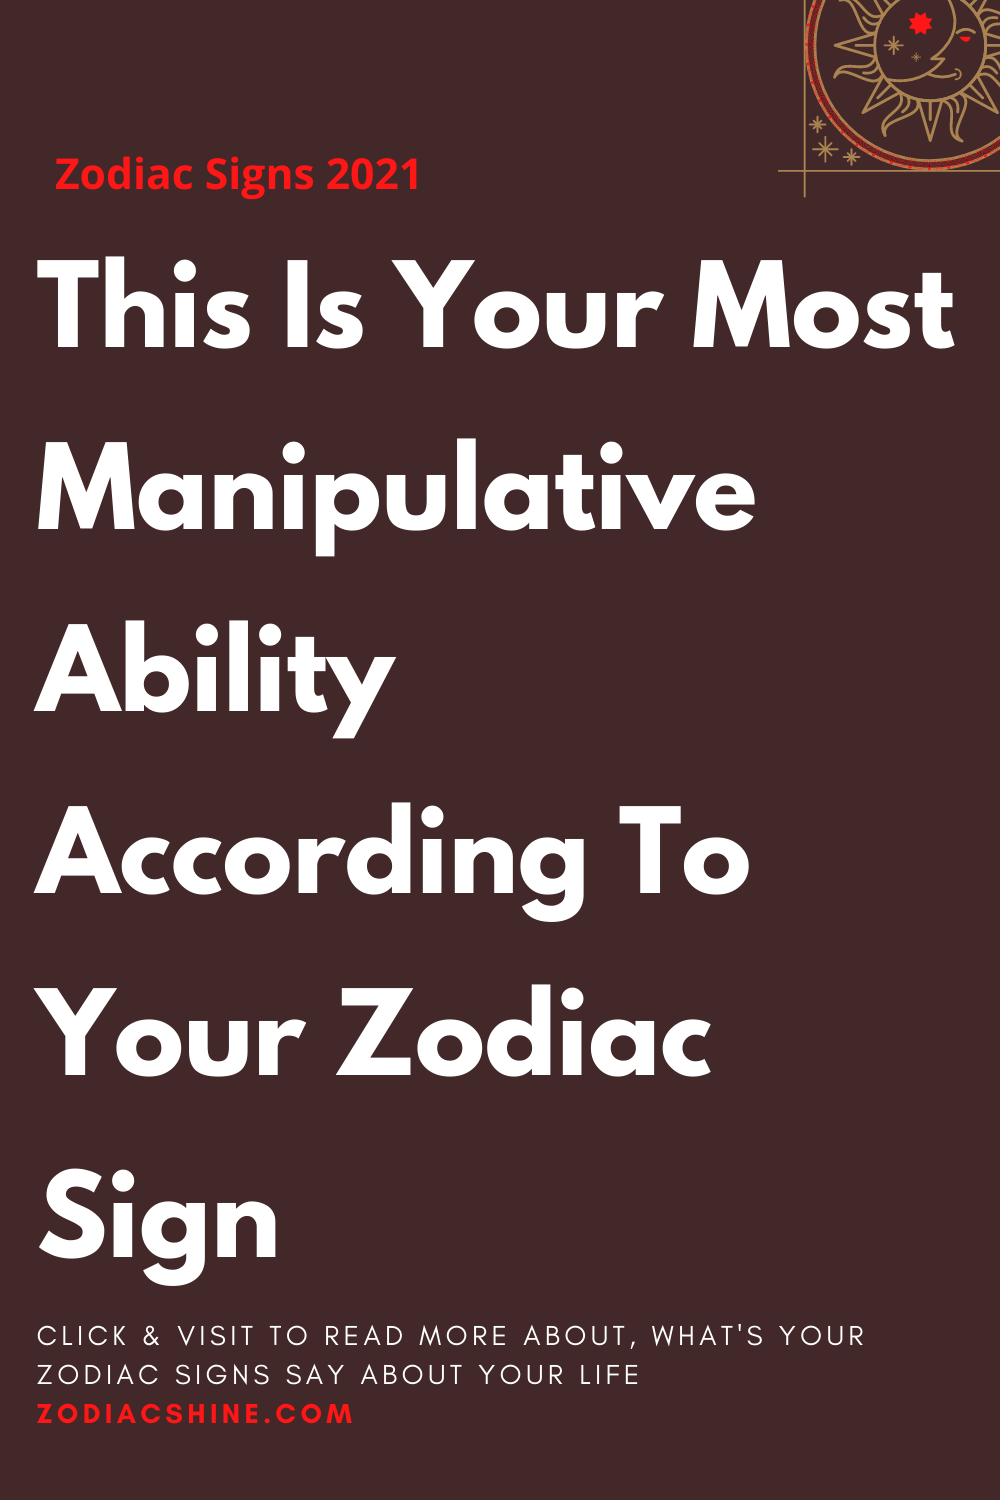 This is your most manipulative ability according to your zodiac sign